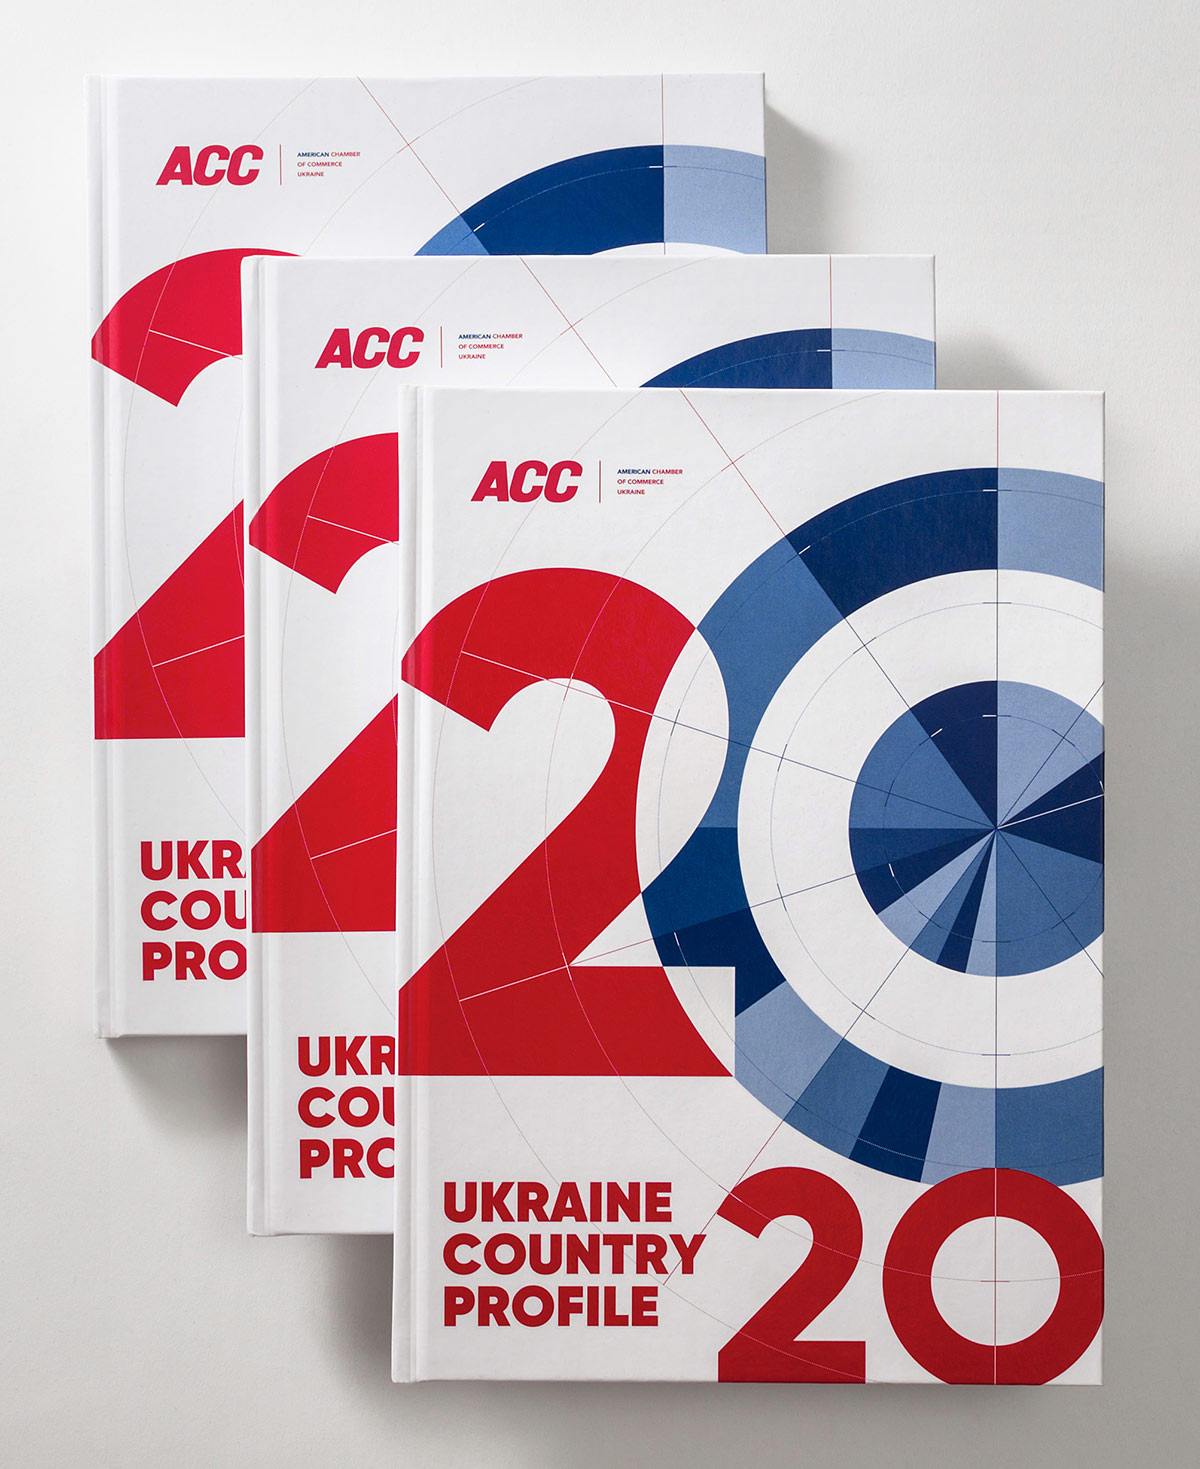 Ukraine Country Profile 2020 book cover. American Chamber of Commerce (ACC).